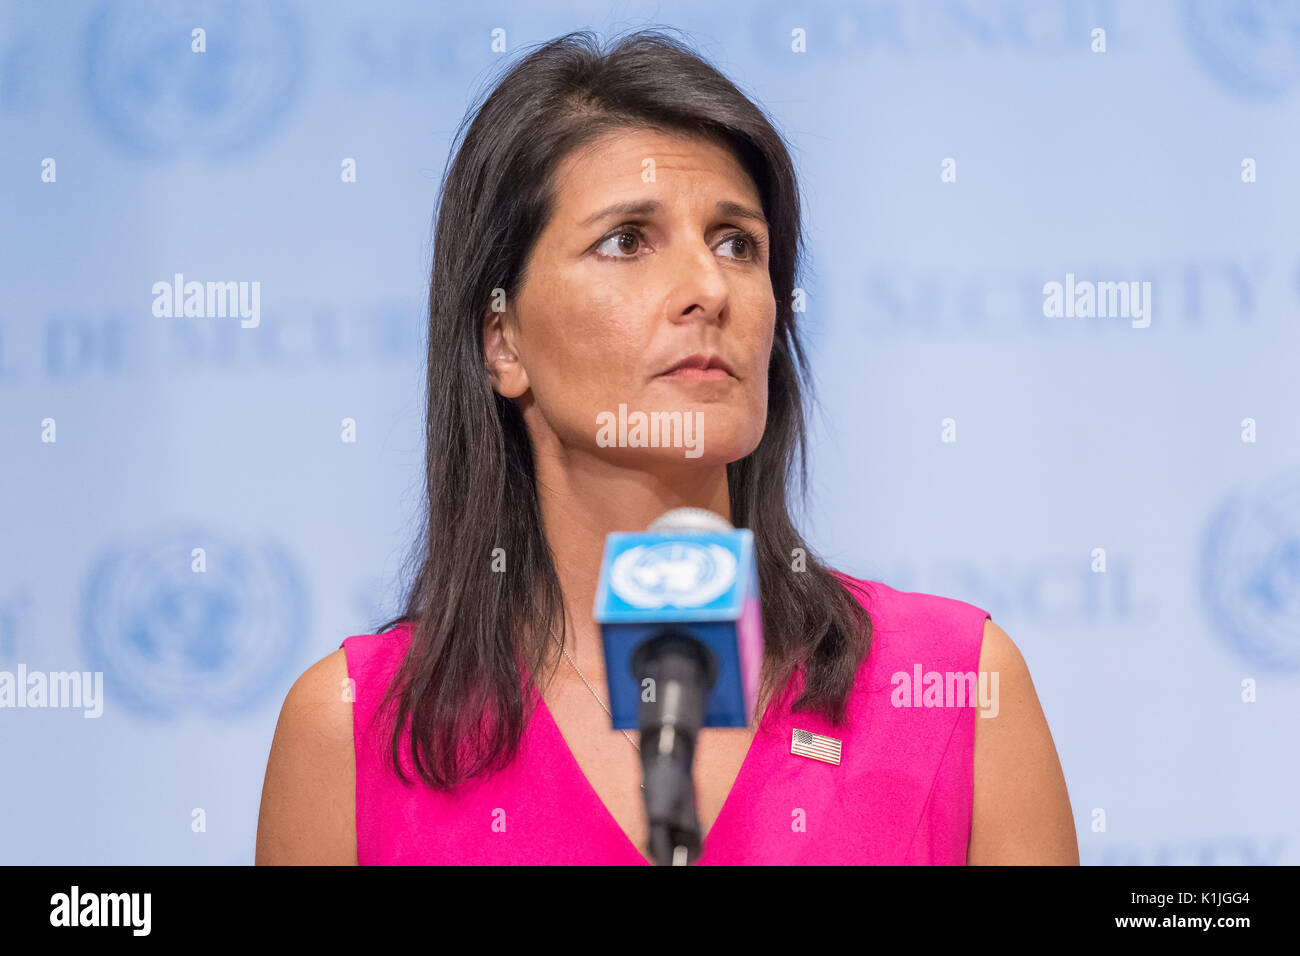 US Permanent Representative to the United Nations Ambassador Nikki Haley is seen during a press encounter at the Security Council stakeout at UN Headquarters. During the media event, Ambassador Haley addressed ongoing concerns over Iran's nuclear program and new sanctions imposed upon Venezuela by the United States. (Photo by Albin Lohr-Jones / Pacific Press) - Stock Image